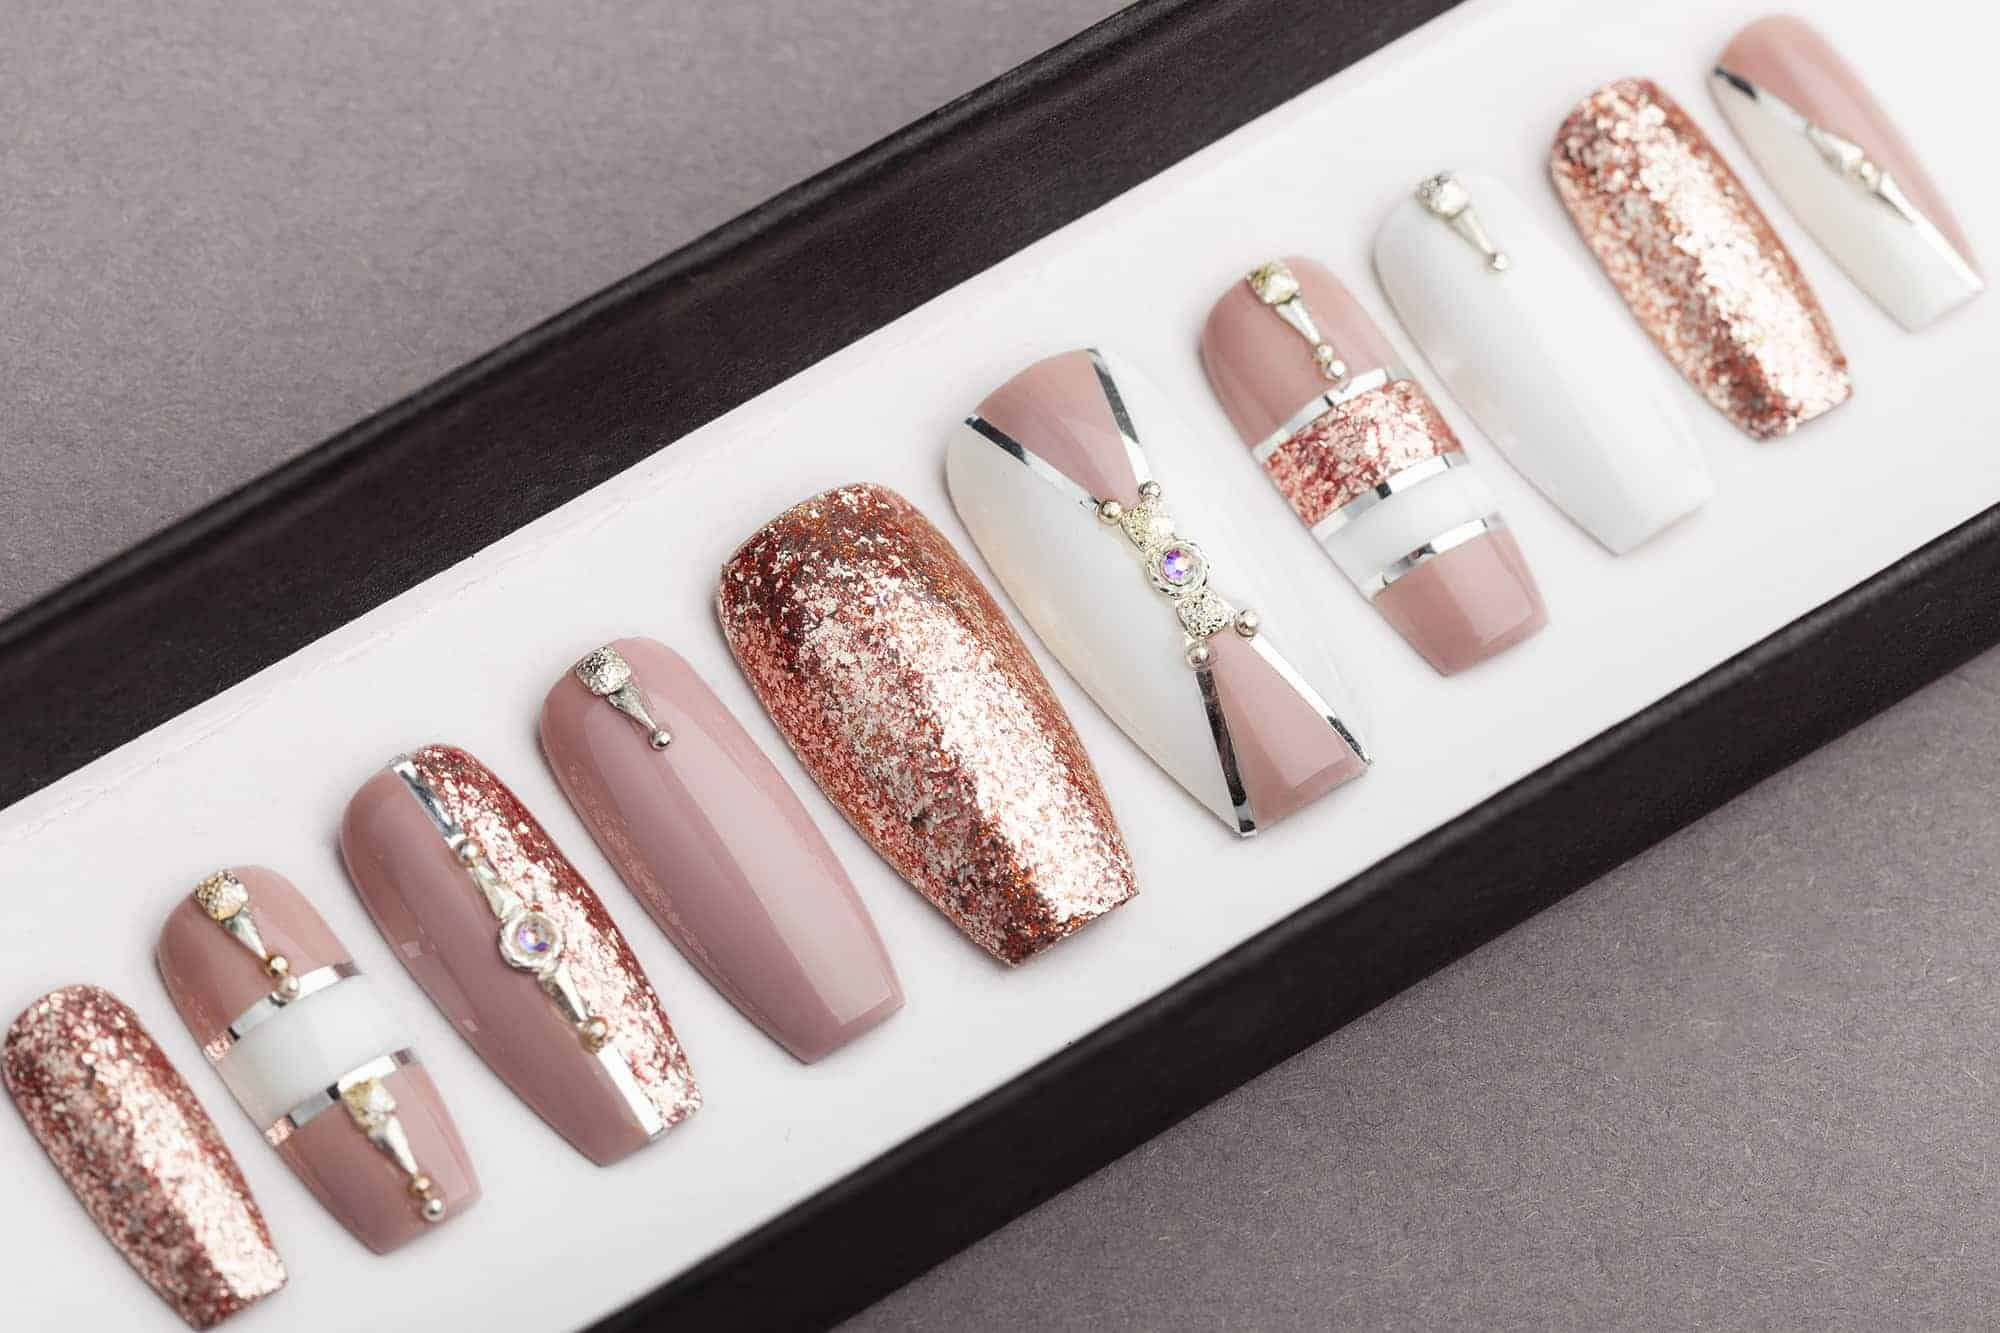 Luxury Rose Gold with White Press on Nails | Rose Gold Swarovski | Handpainted Nail Art | Fake Nails | False Nails | Glue On Nails